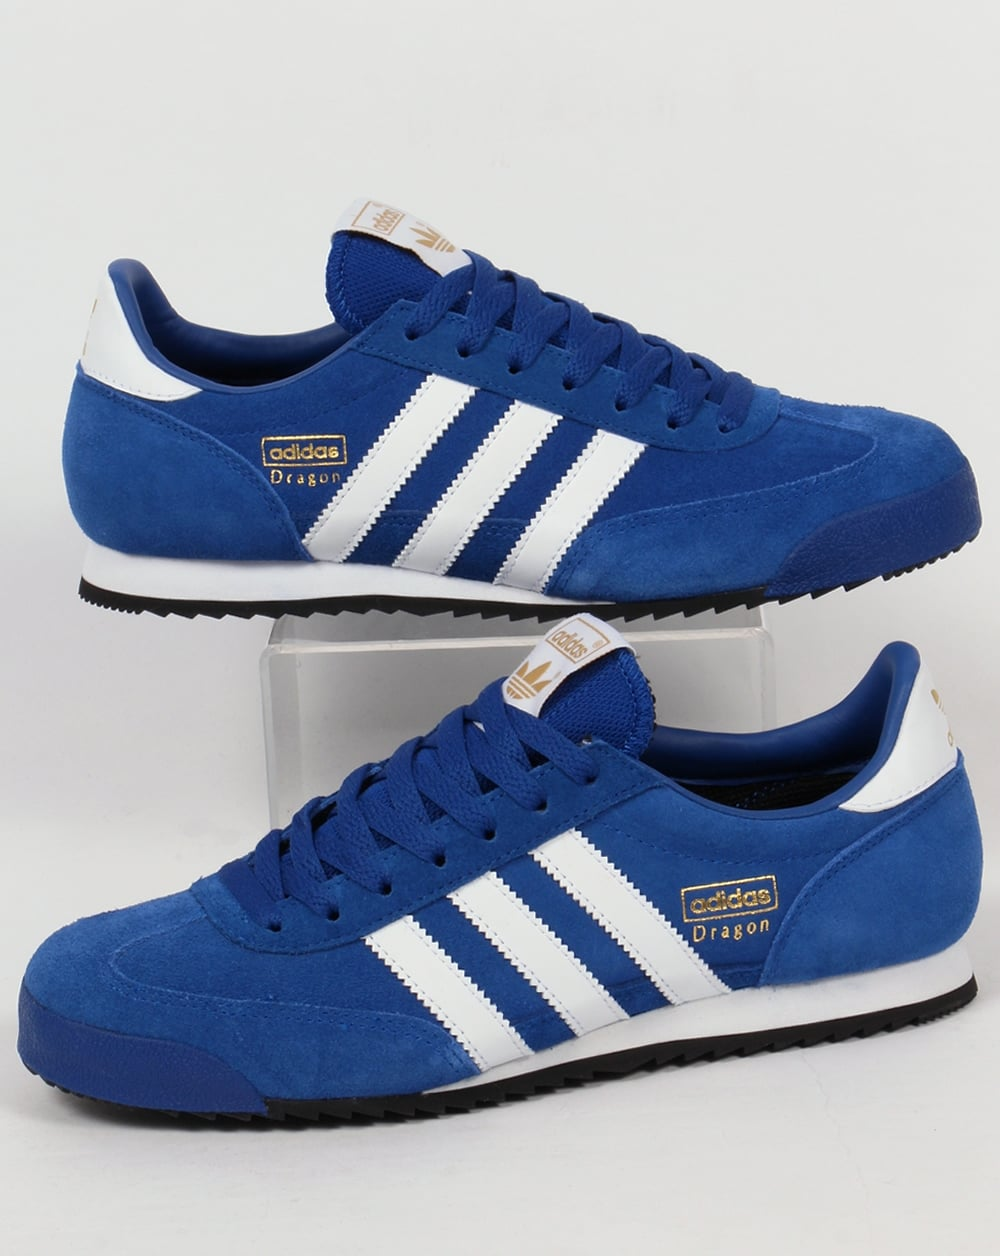 super popular a1316 d7d17 adidas Trainers Adidas Dragon Trainers Royal White Black